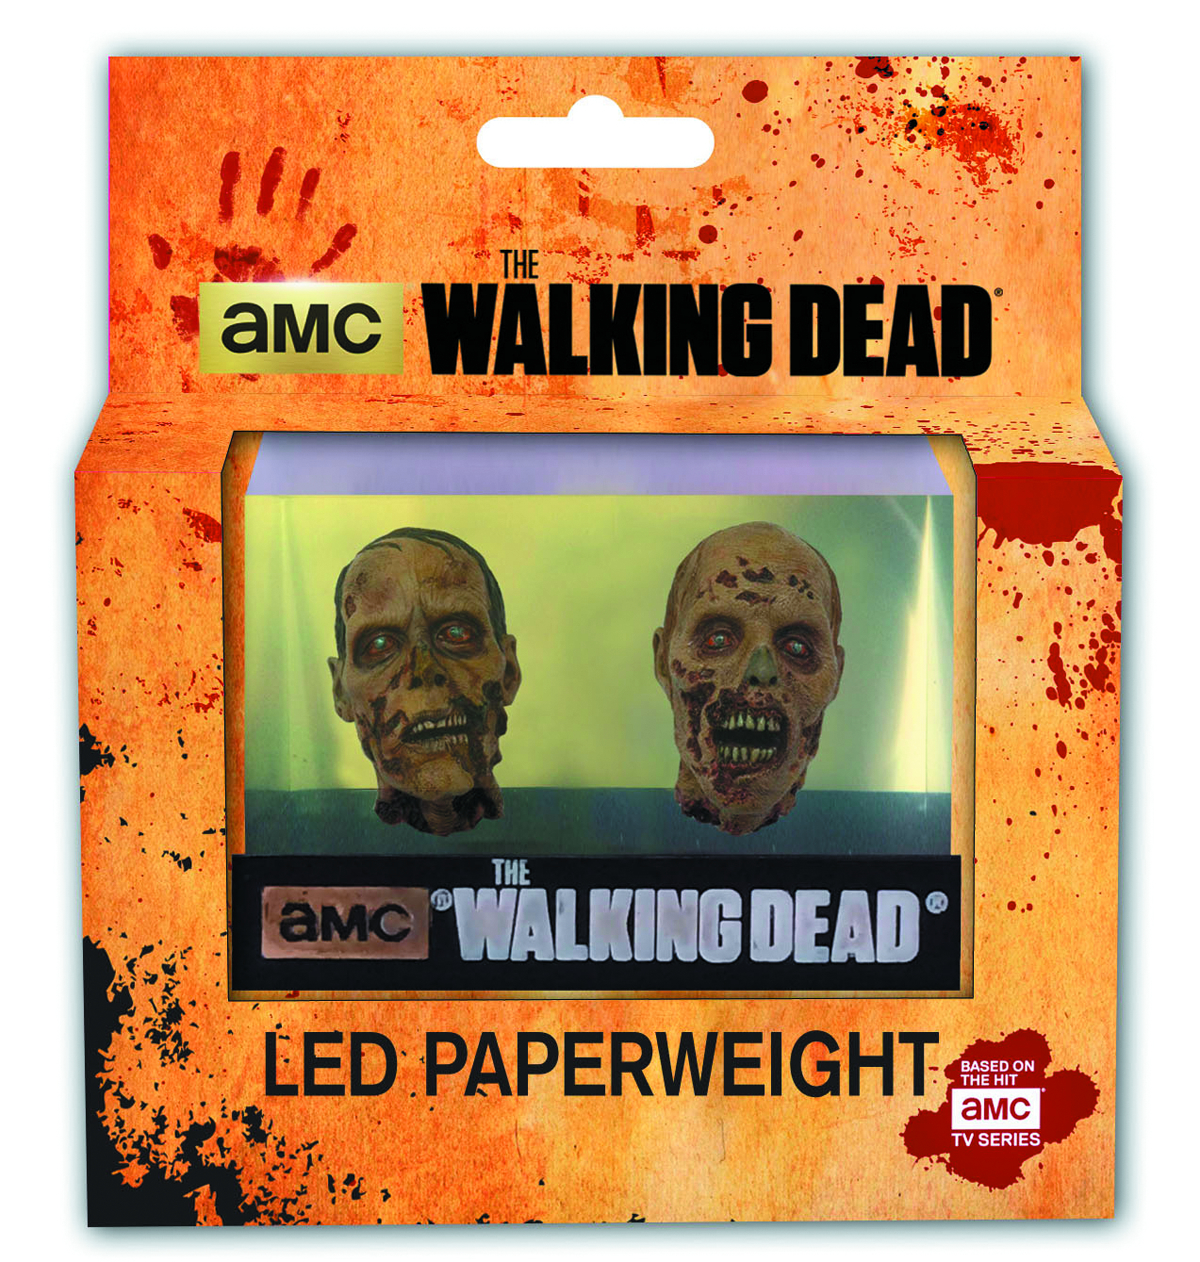 WALKING DEAD FISH TANK LED PAPERWEIGHT